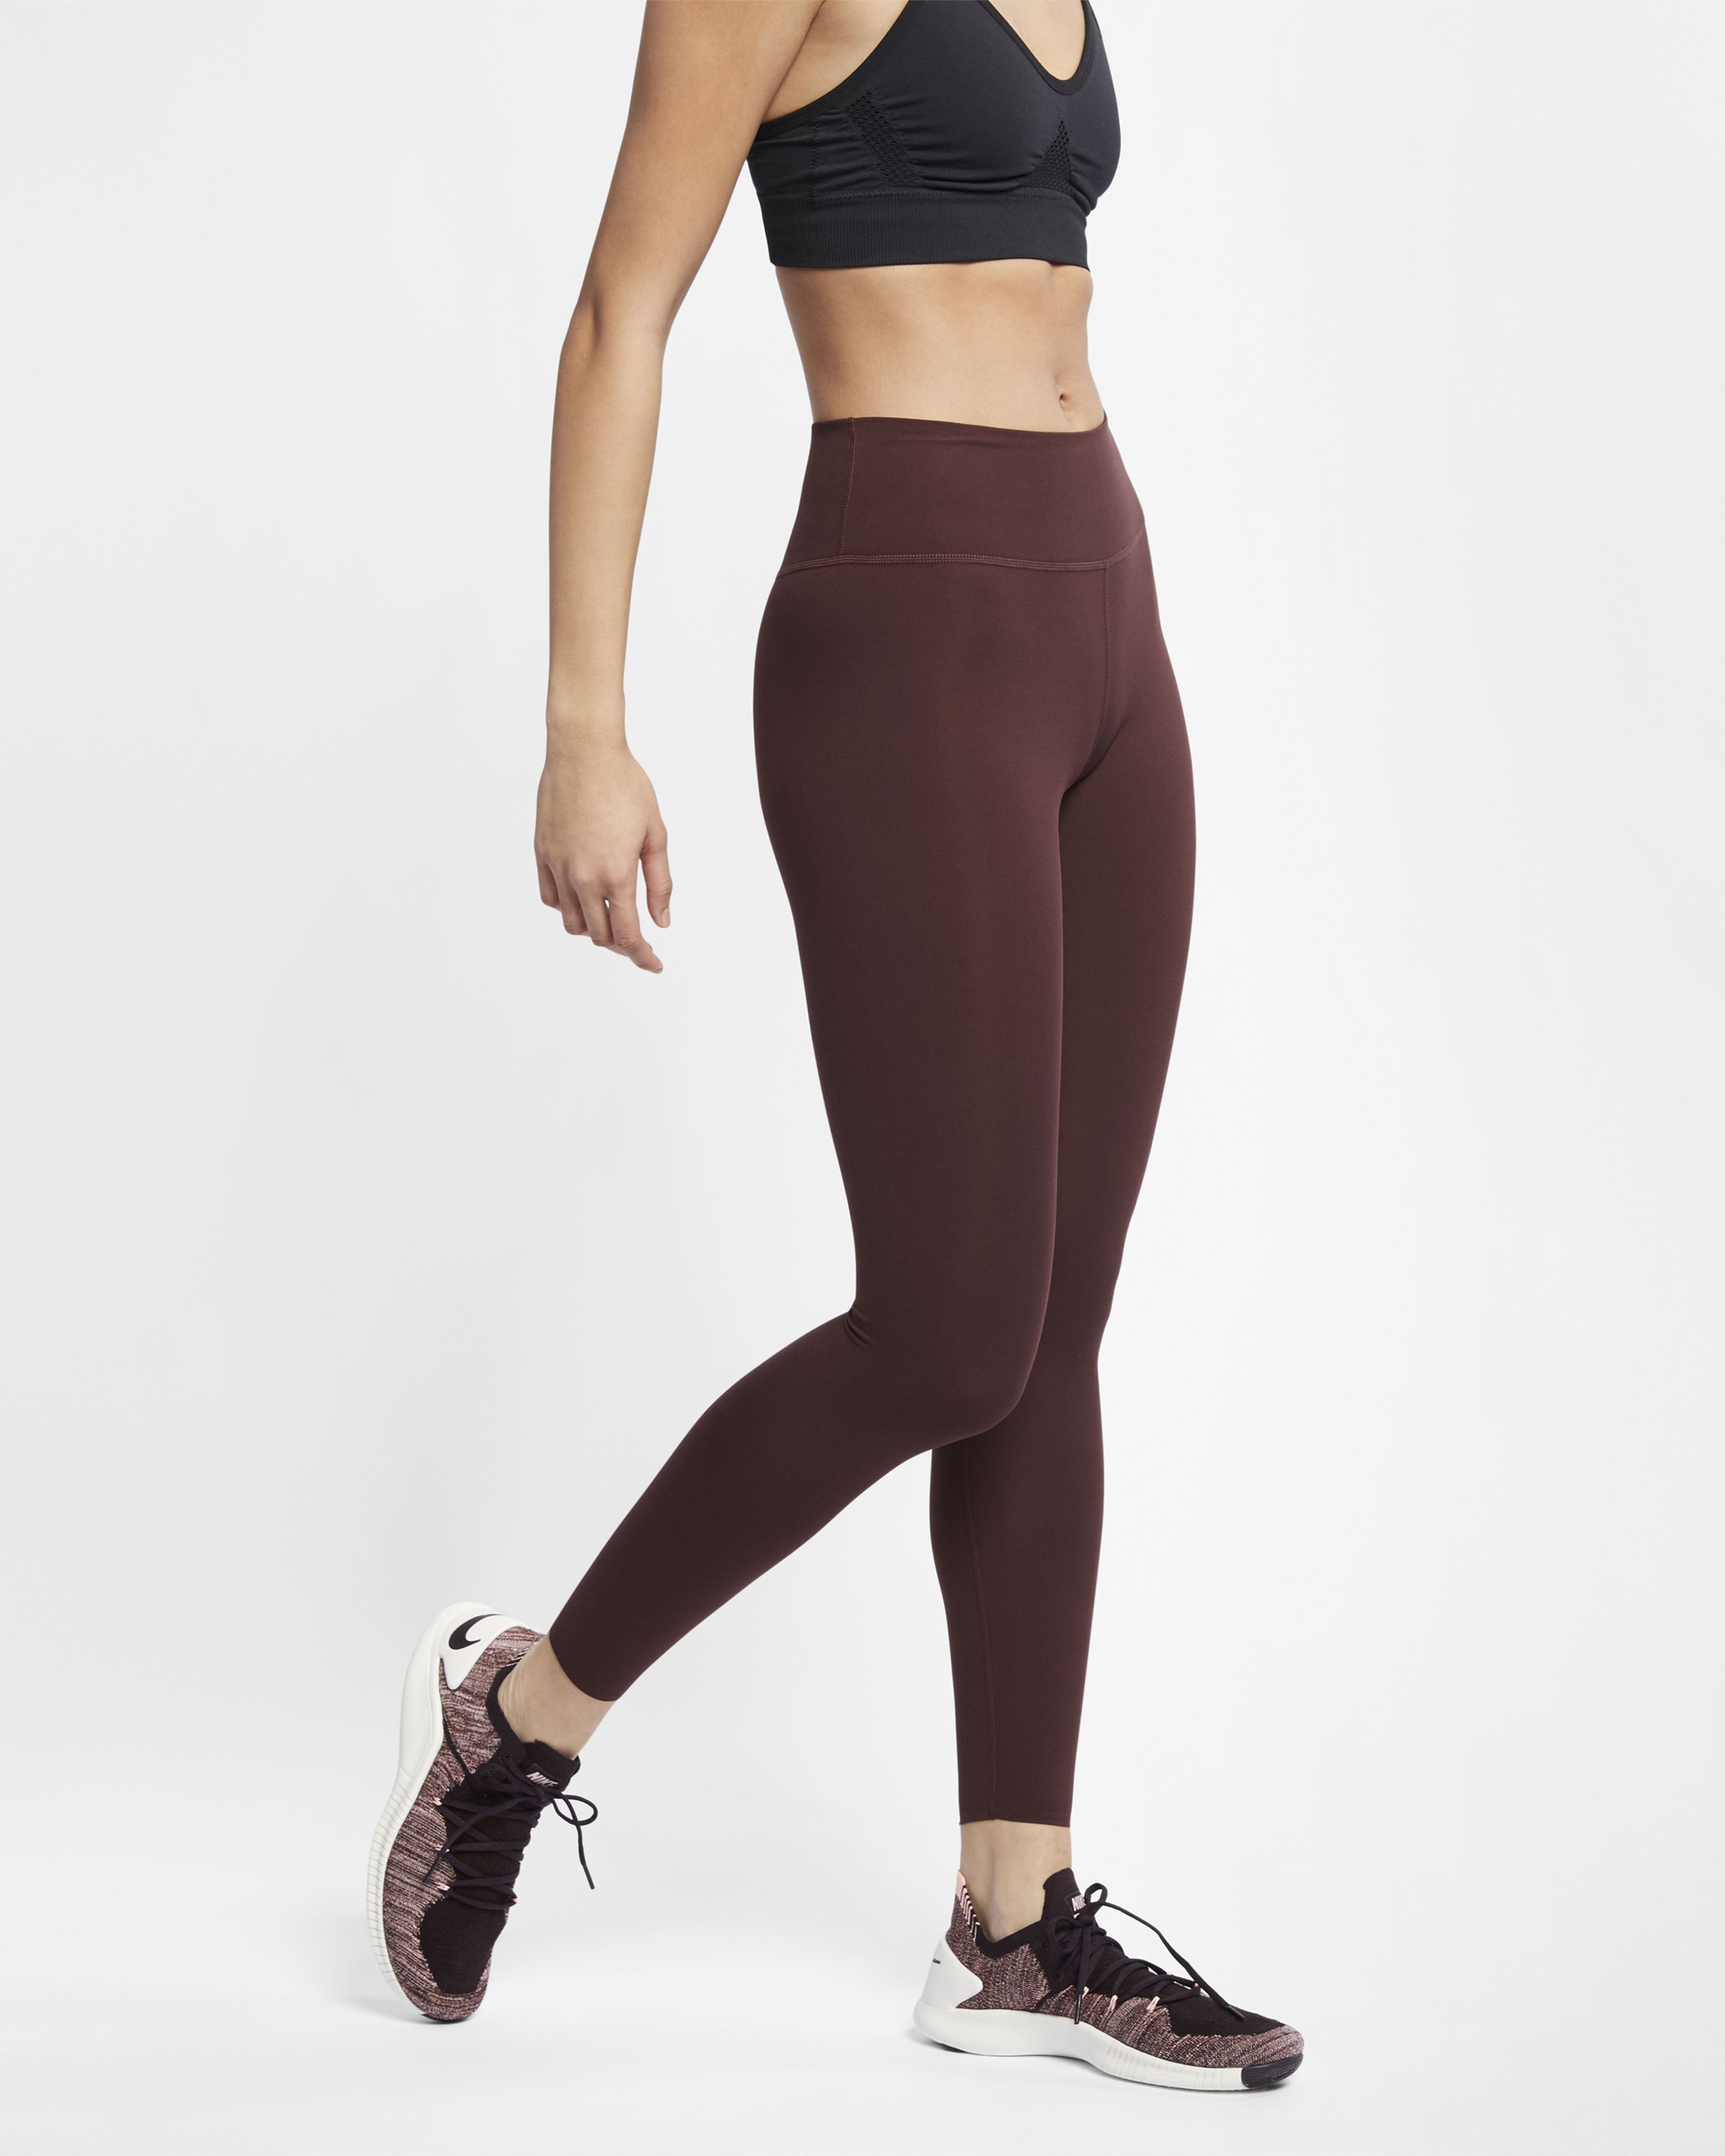 e5ca071e234 16 Pairs of Leggings You Can Wear to a Real or Fake Workout